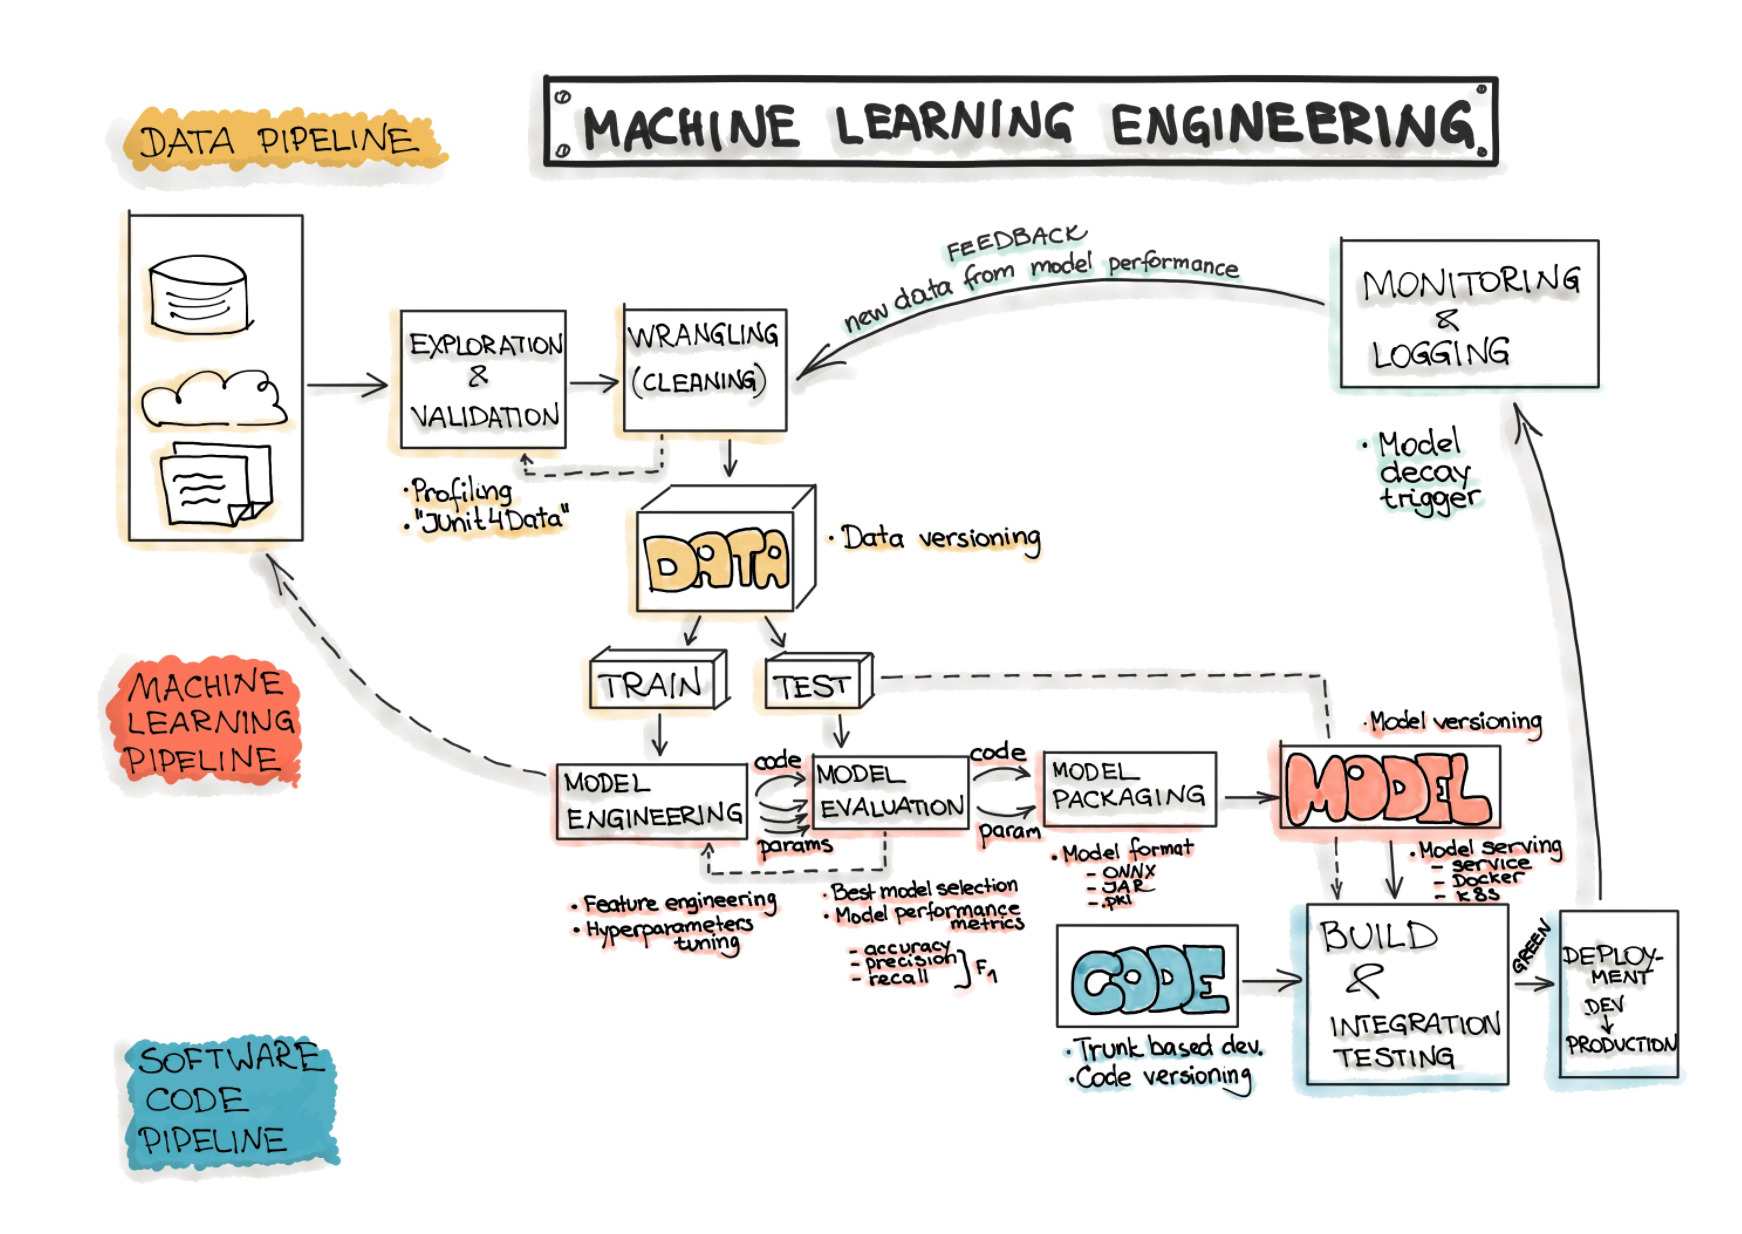 A rough sketch of the ML Engineering workflow